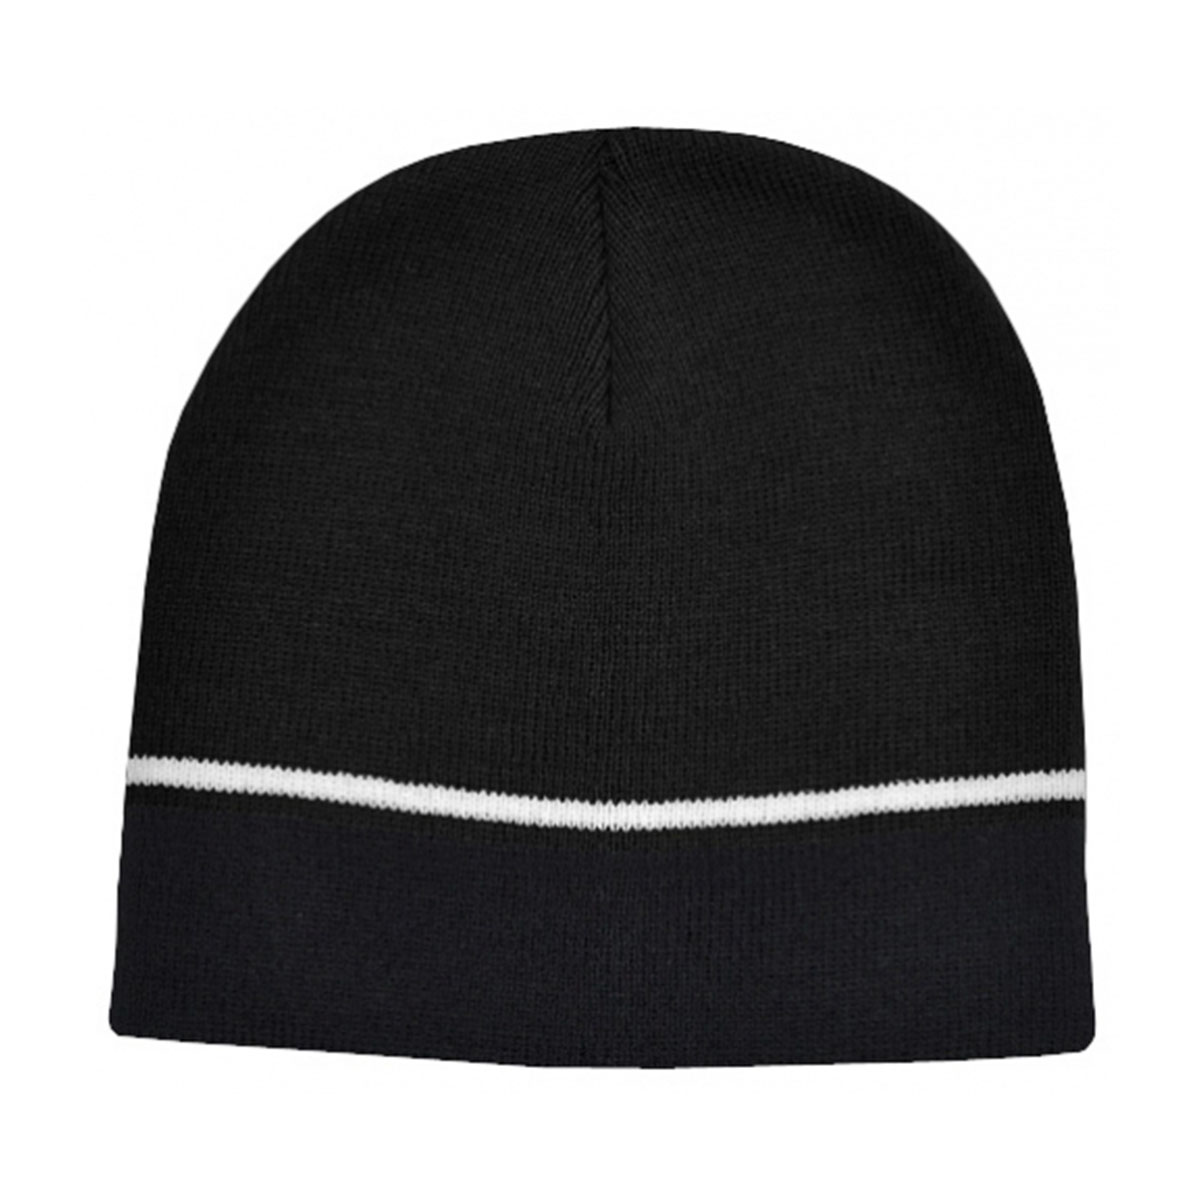 Two-Tone Beanie-Black / White